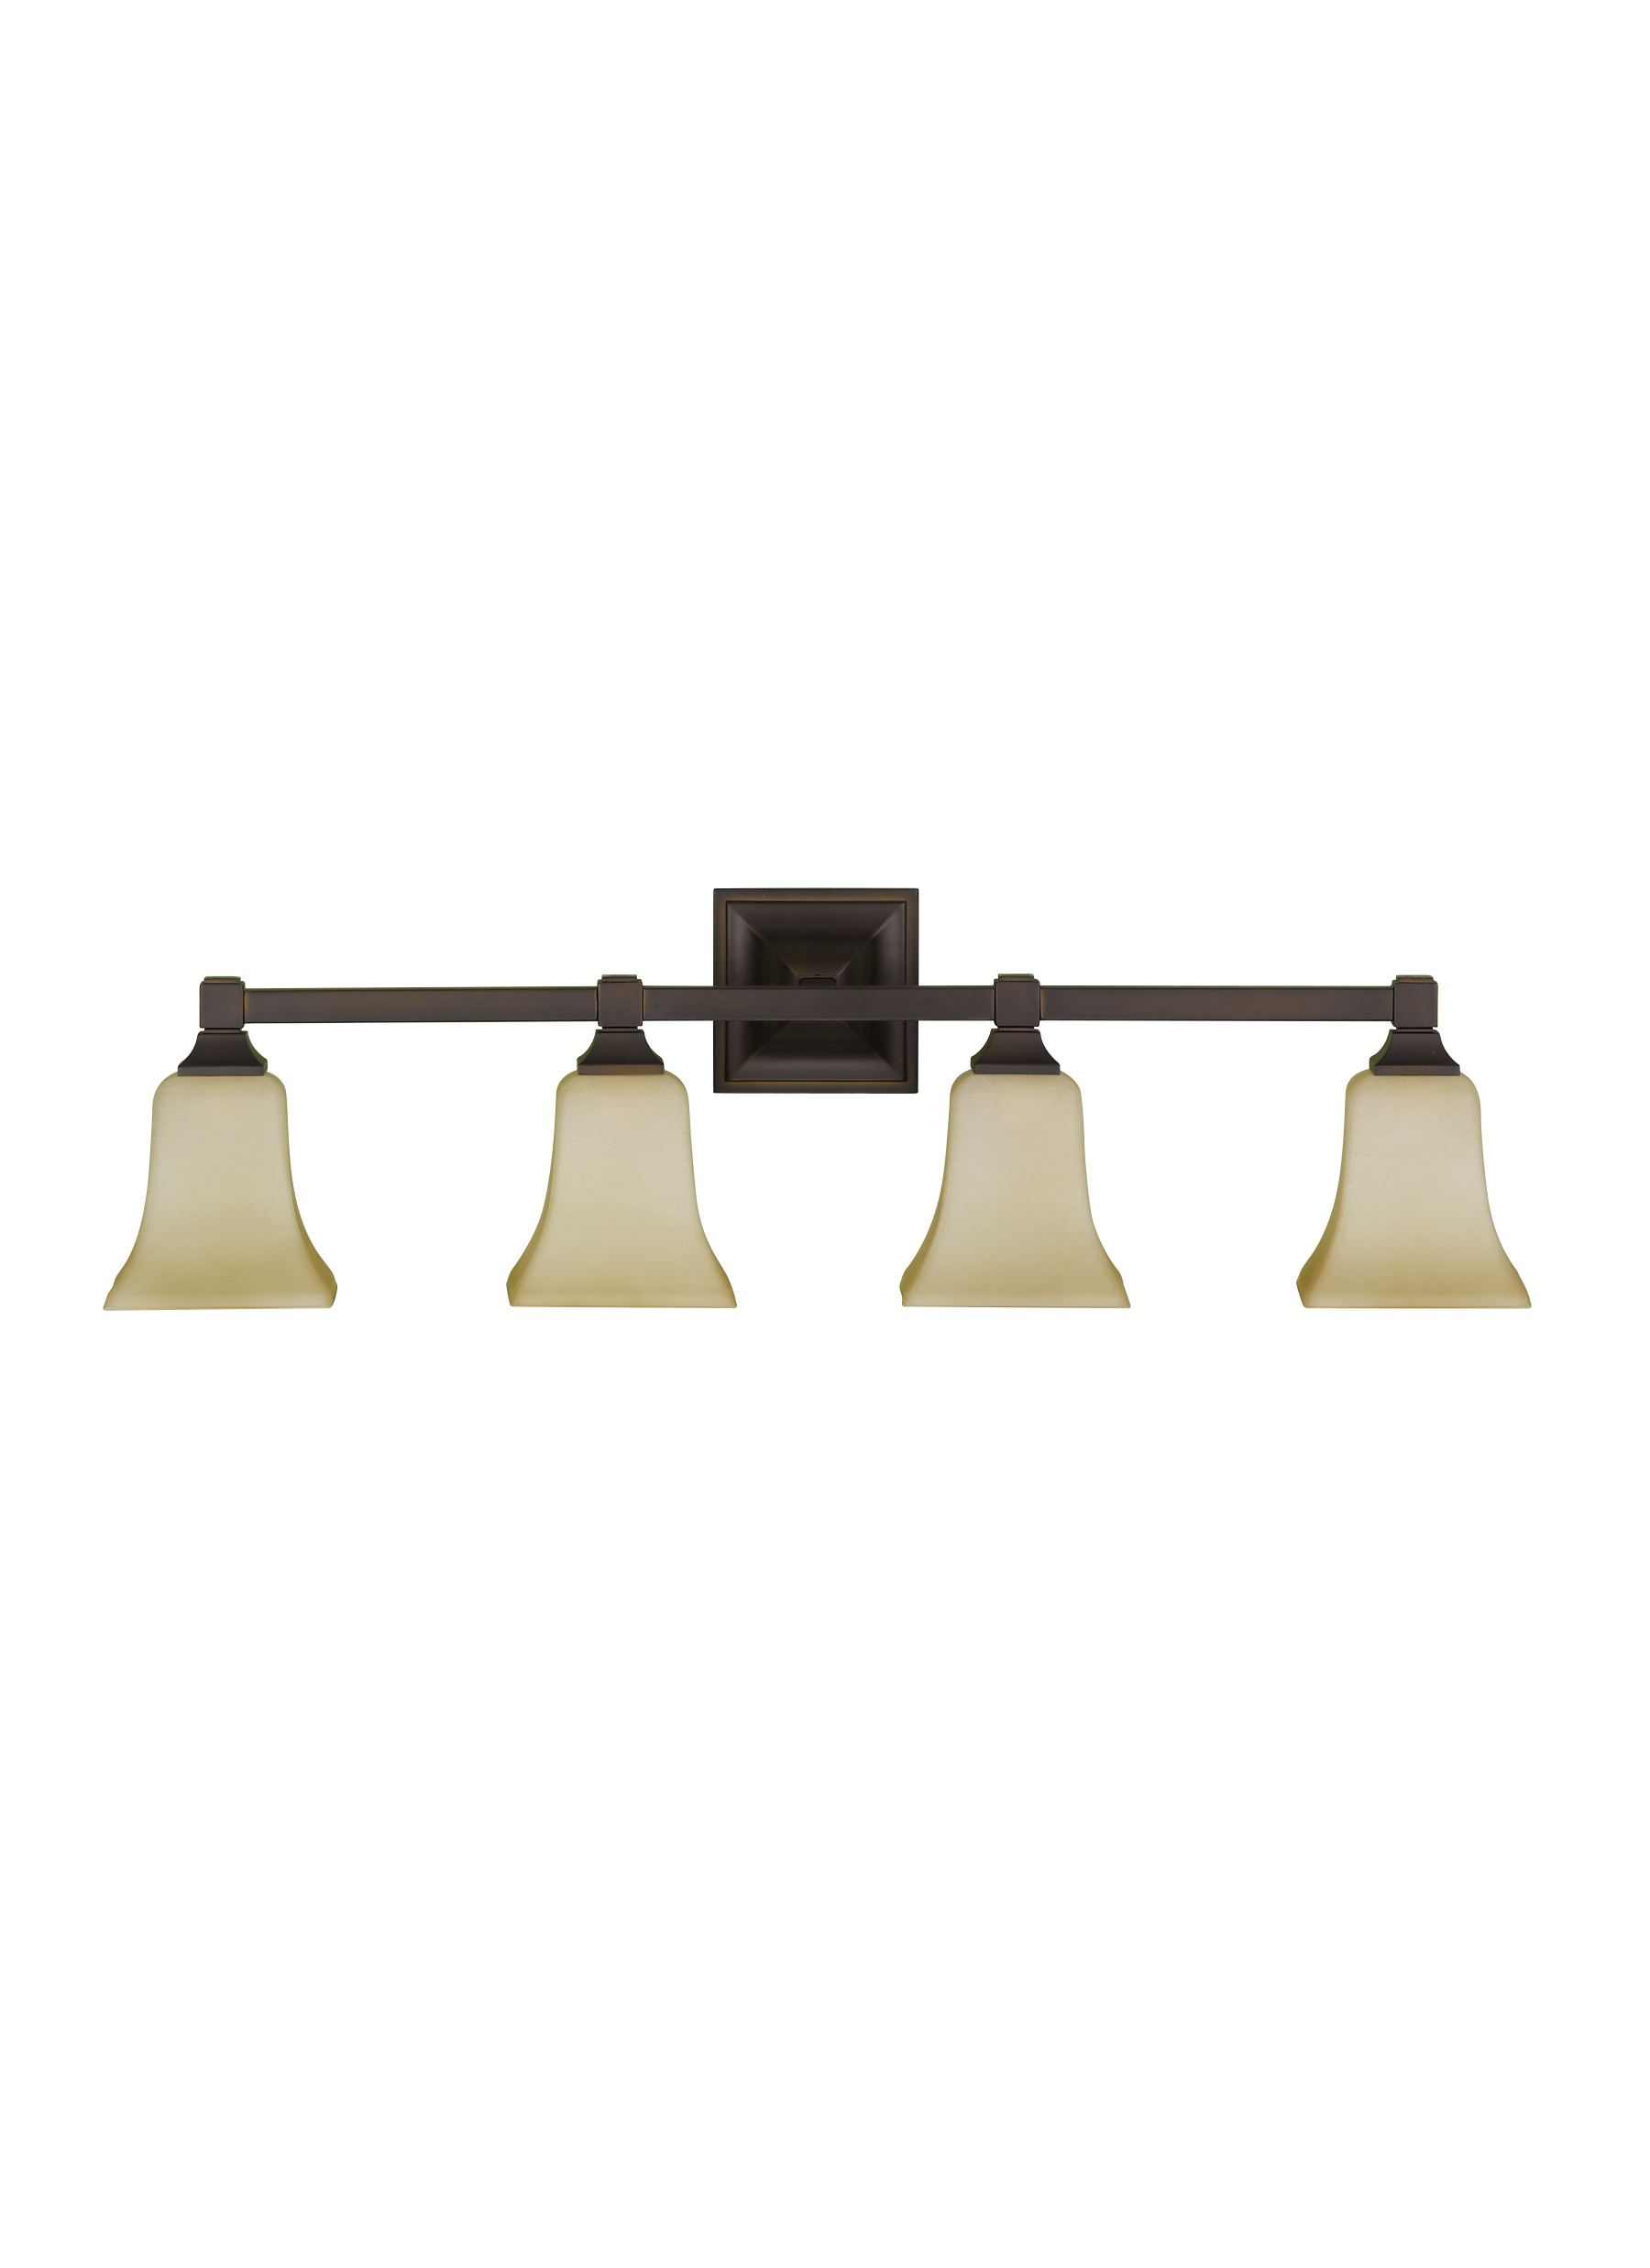 VS12404-ORB,4 - Light Vanity Fixture,Oil Rubbed Bronze